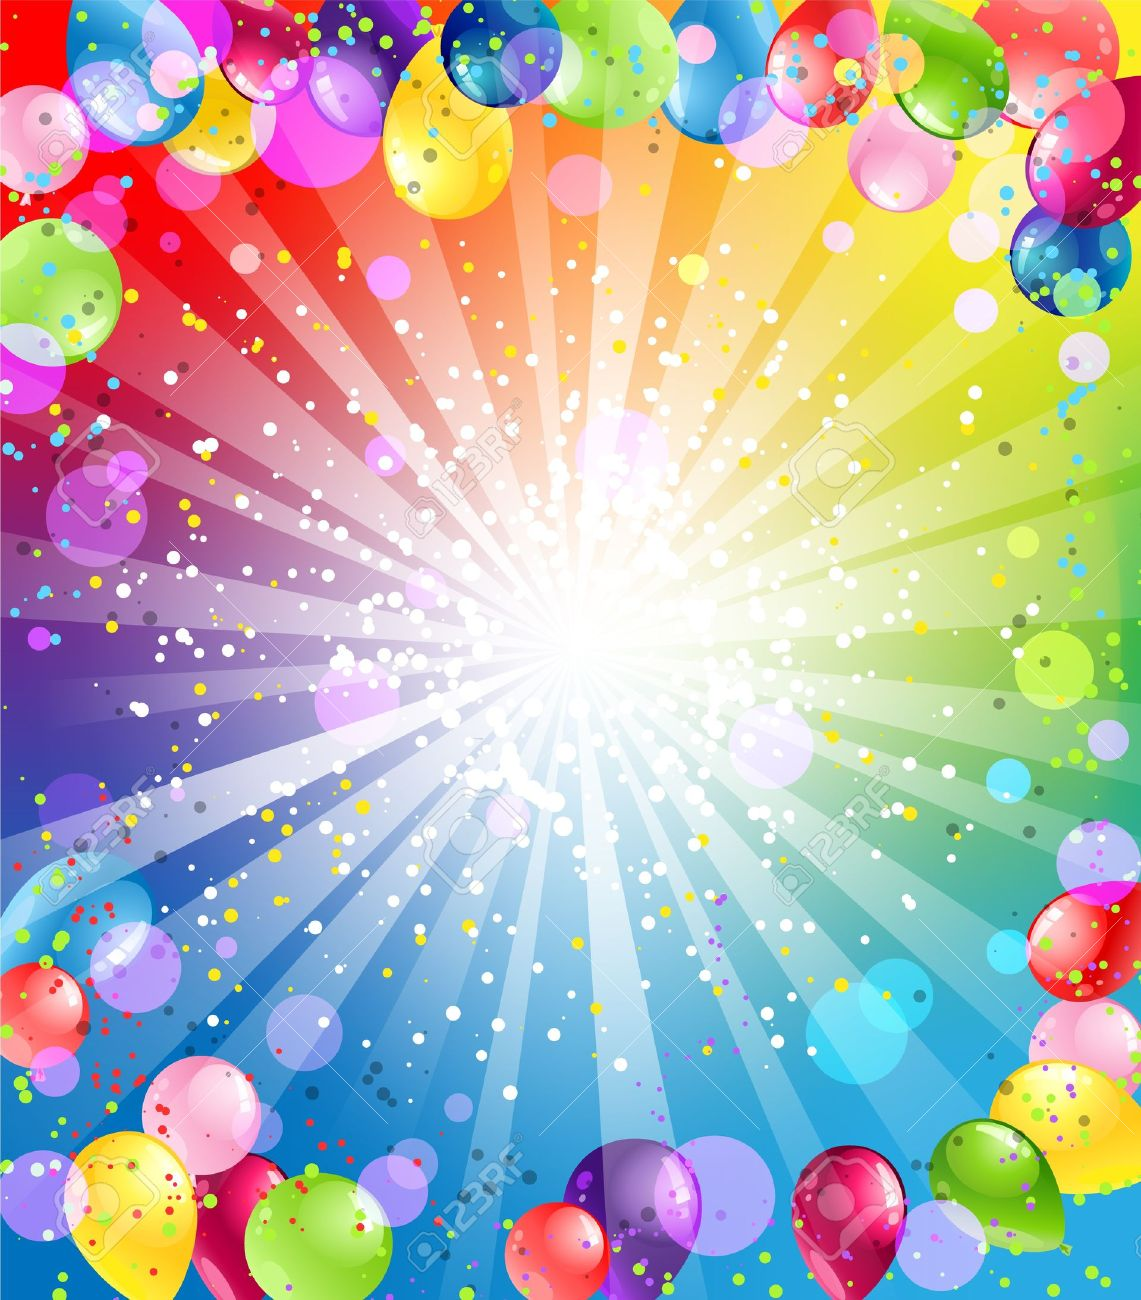 Festive background with balloons - 20544708